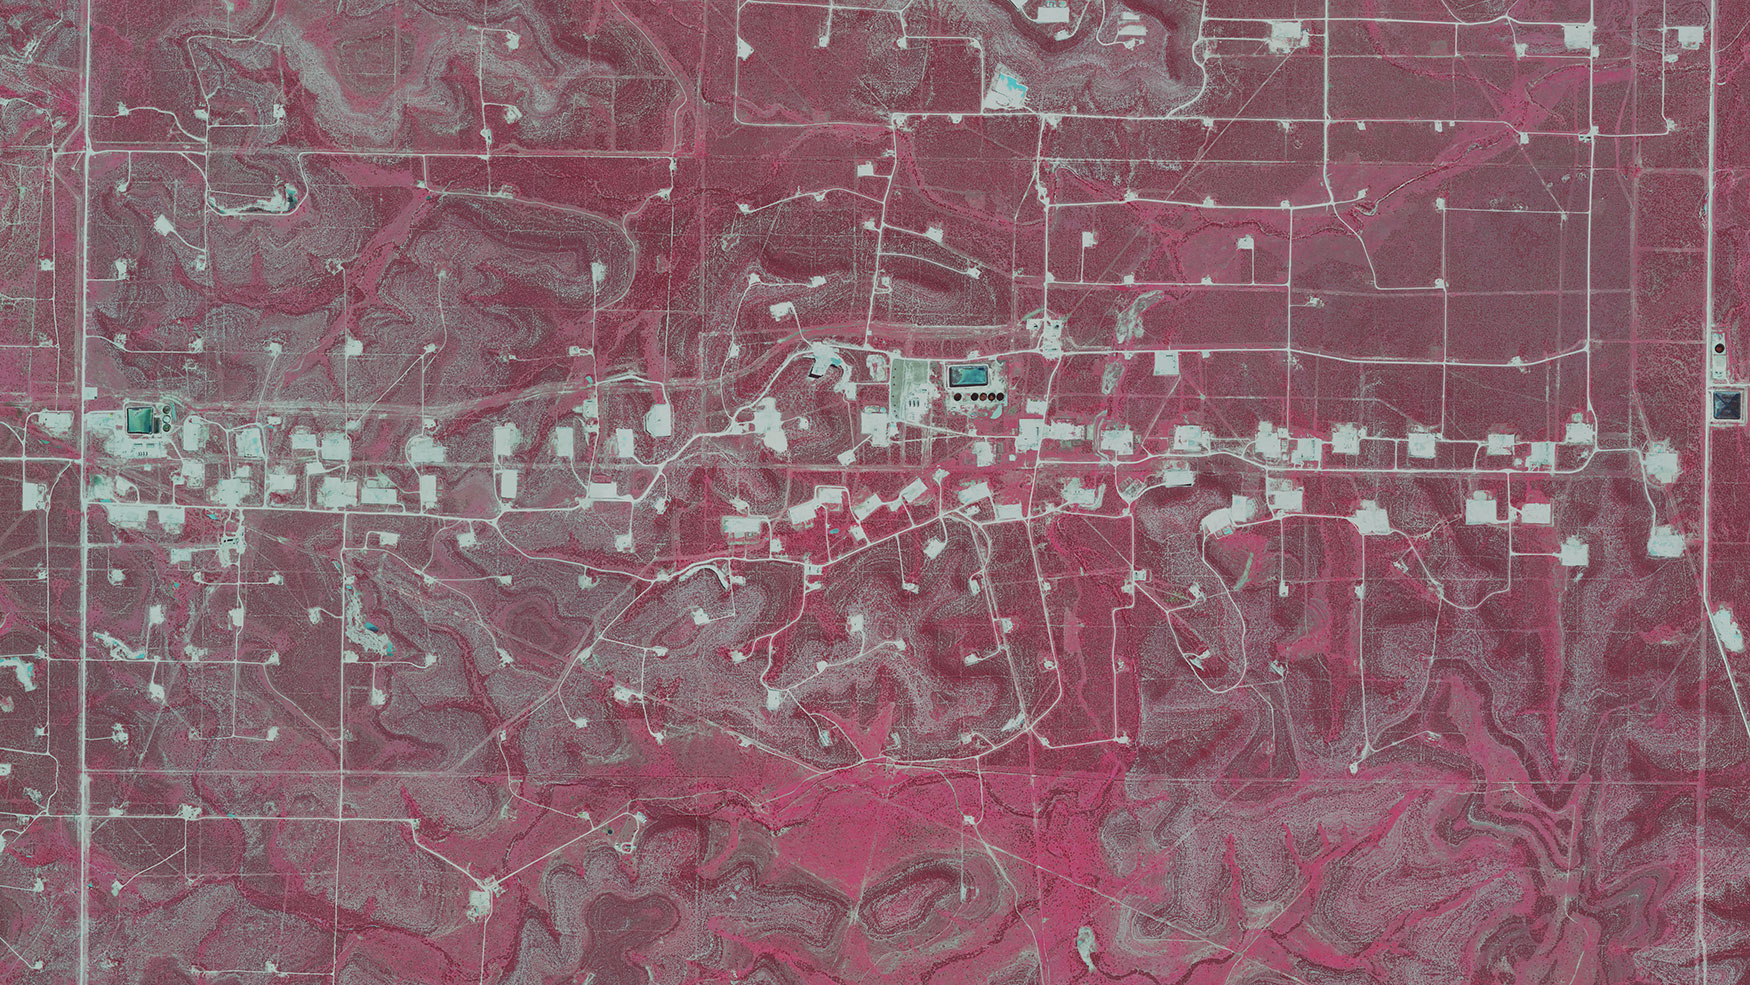 Color infra red of Irion County